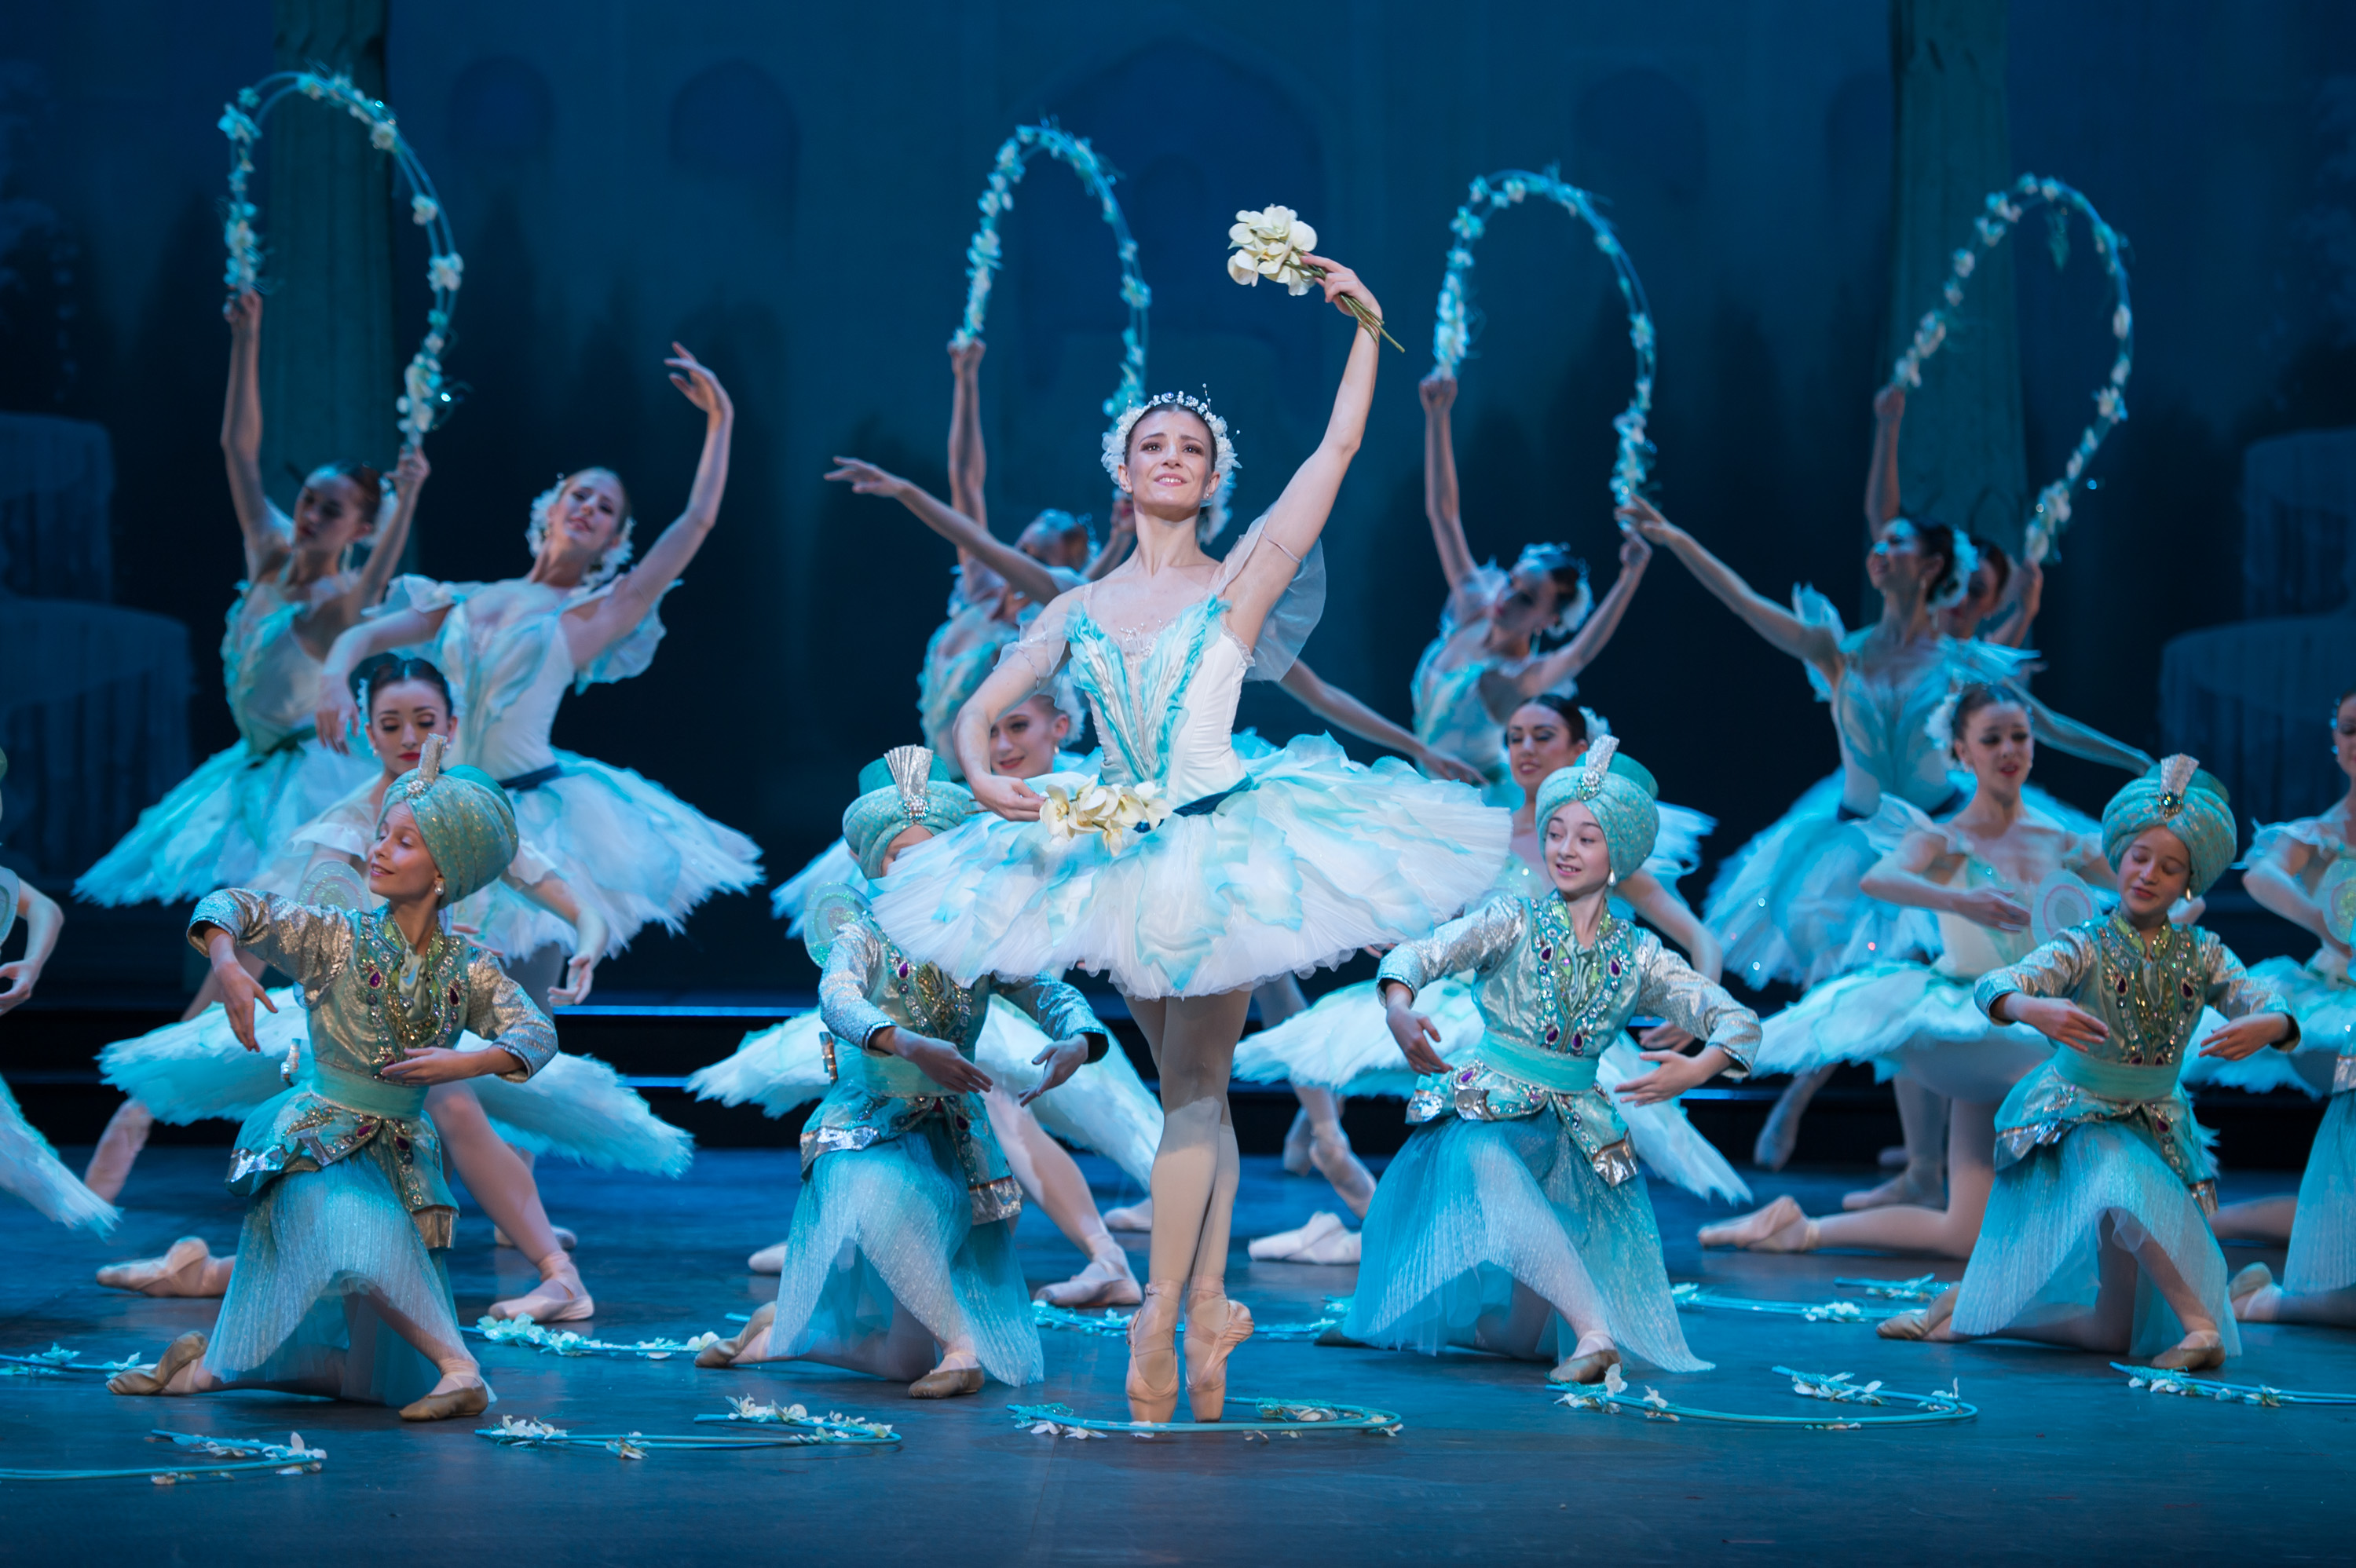 English National Ballet. World premiere of Le Corsaire. Alina Cojocaru in Le Corsaire.